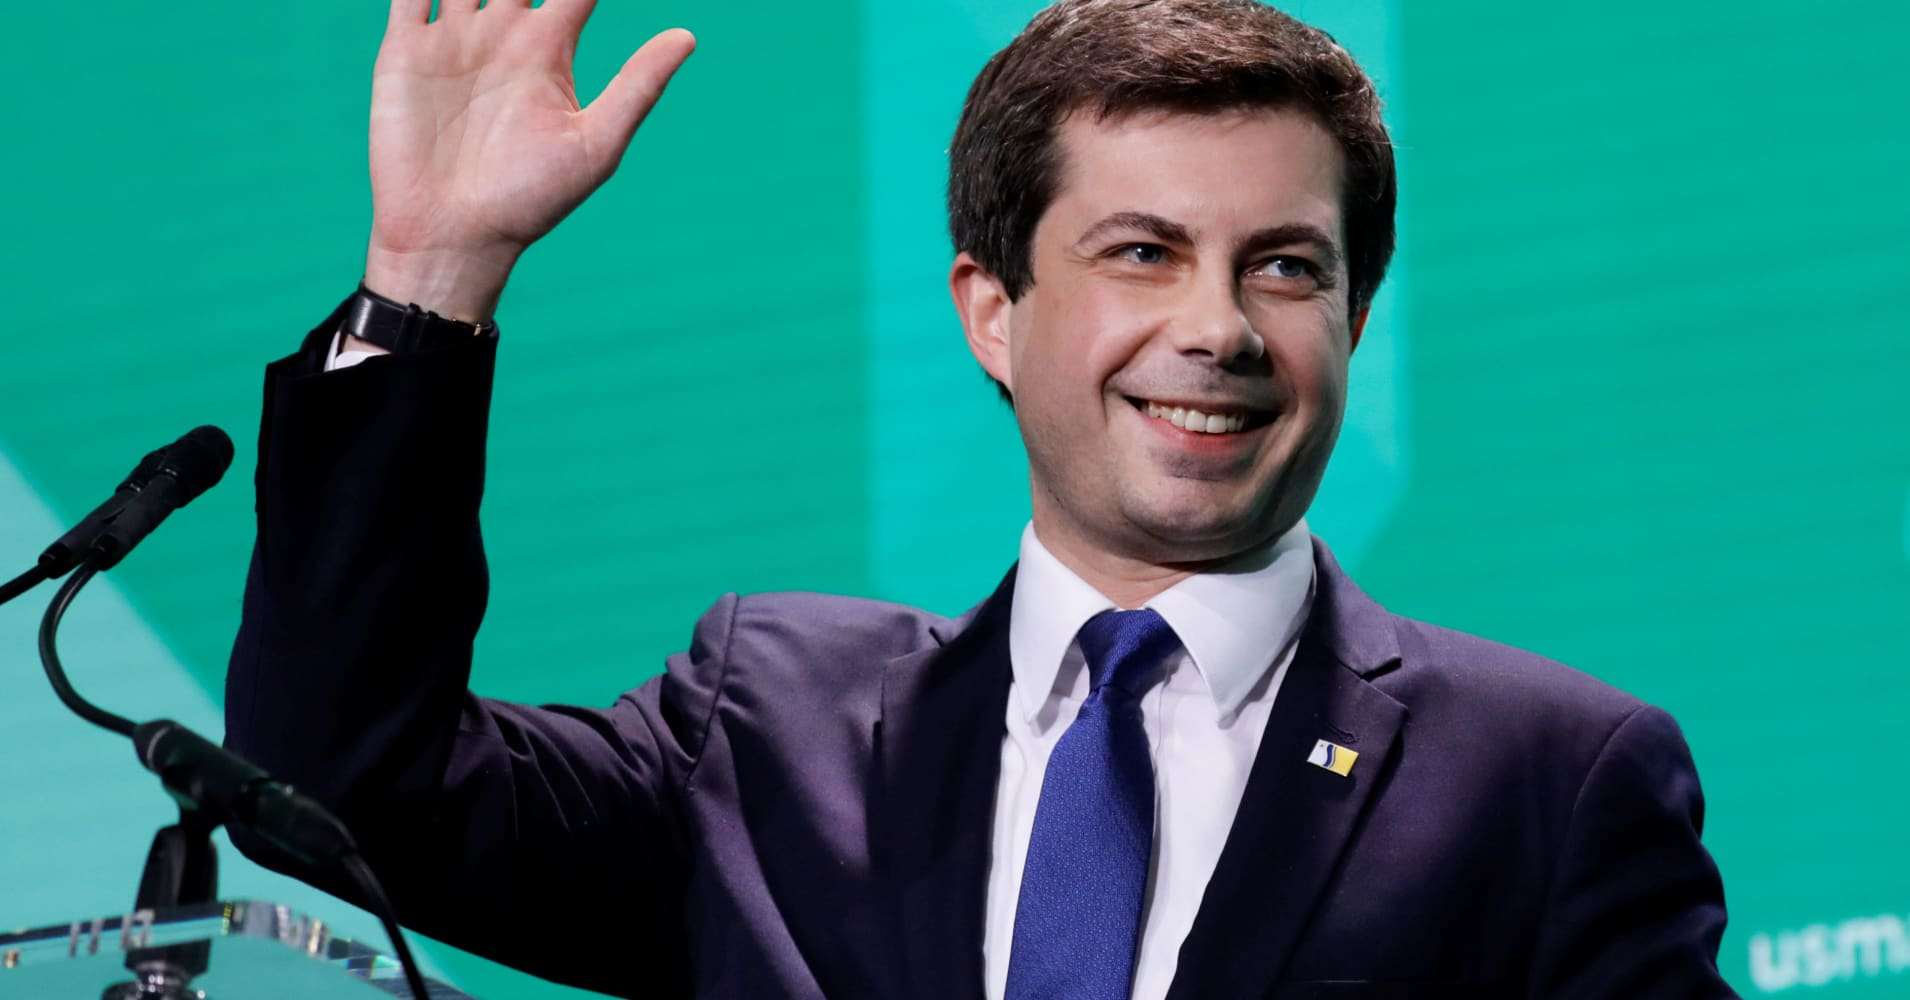 Meet Pete Buttigieg, the young, gay veteran and Midwest mayor who wants to take on Trump in 2020